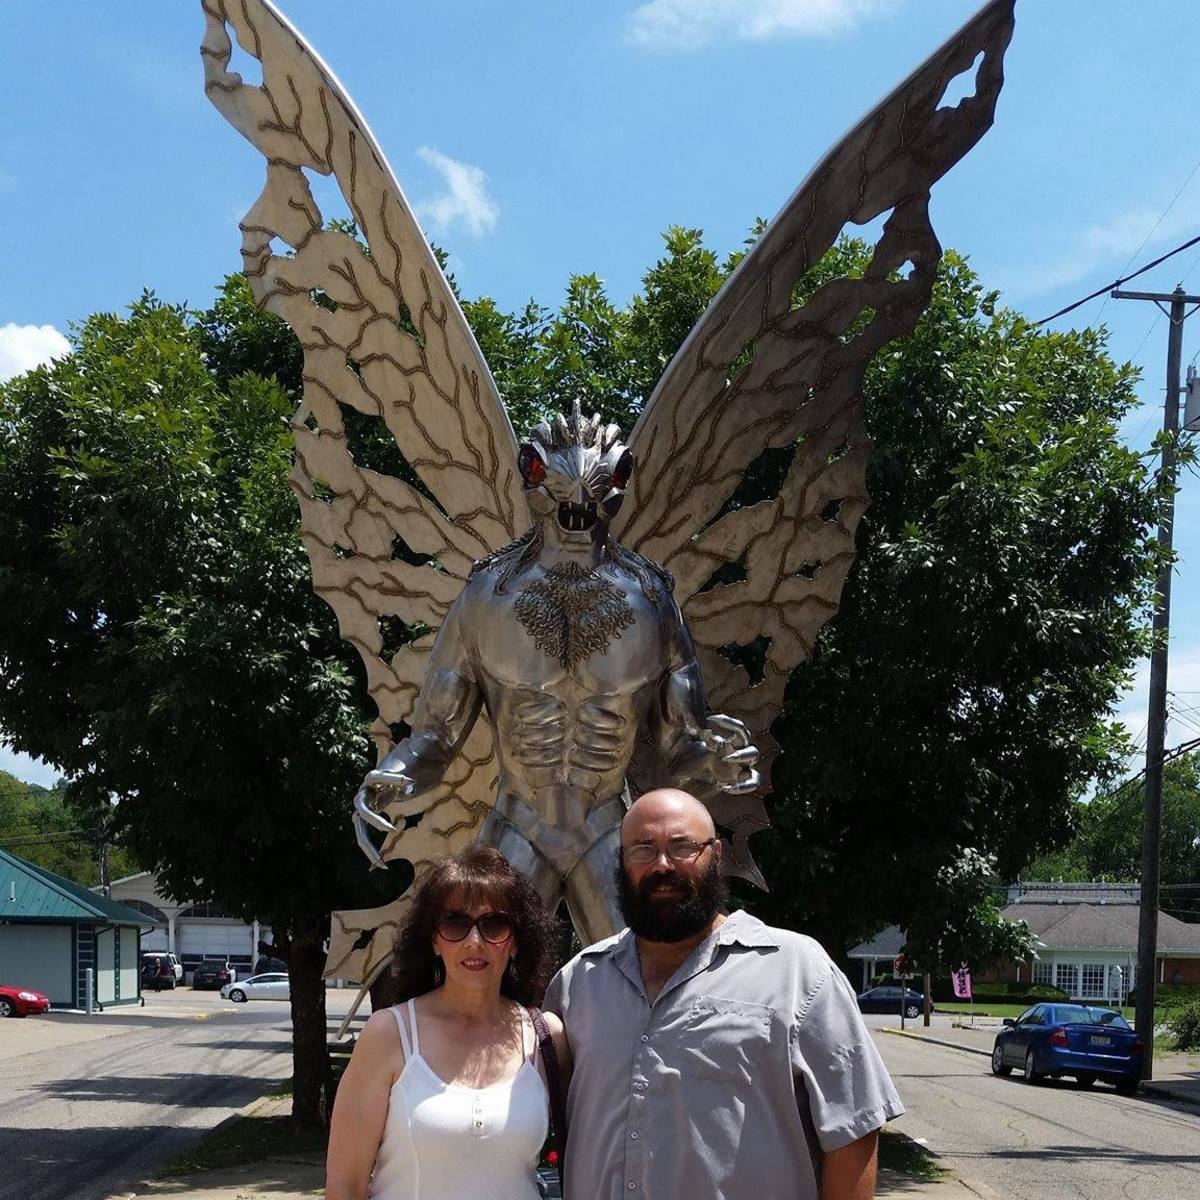 My husband and me in front of the Mothman statue located in Point Pleasant, West Virginia.